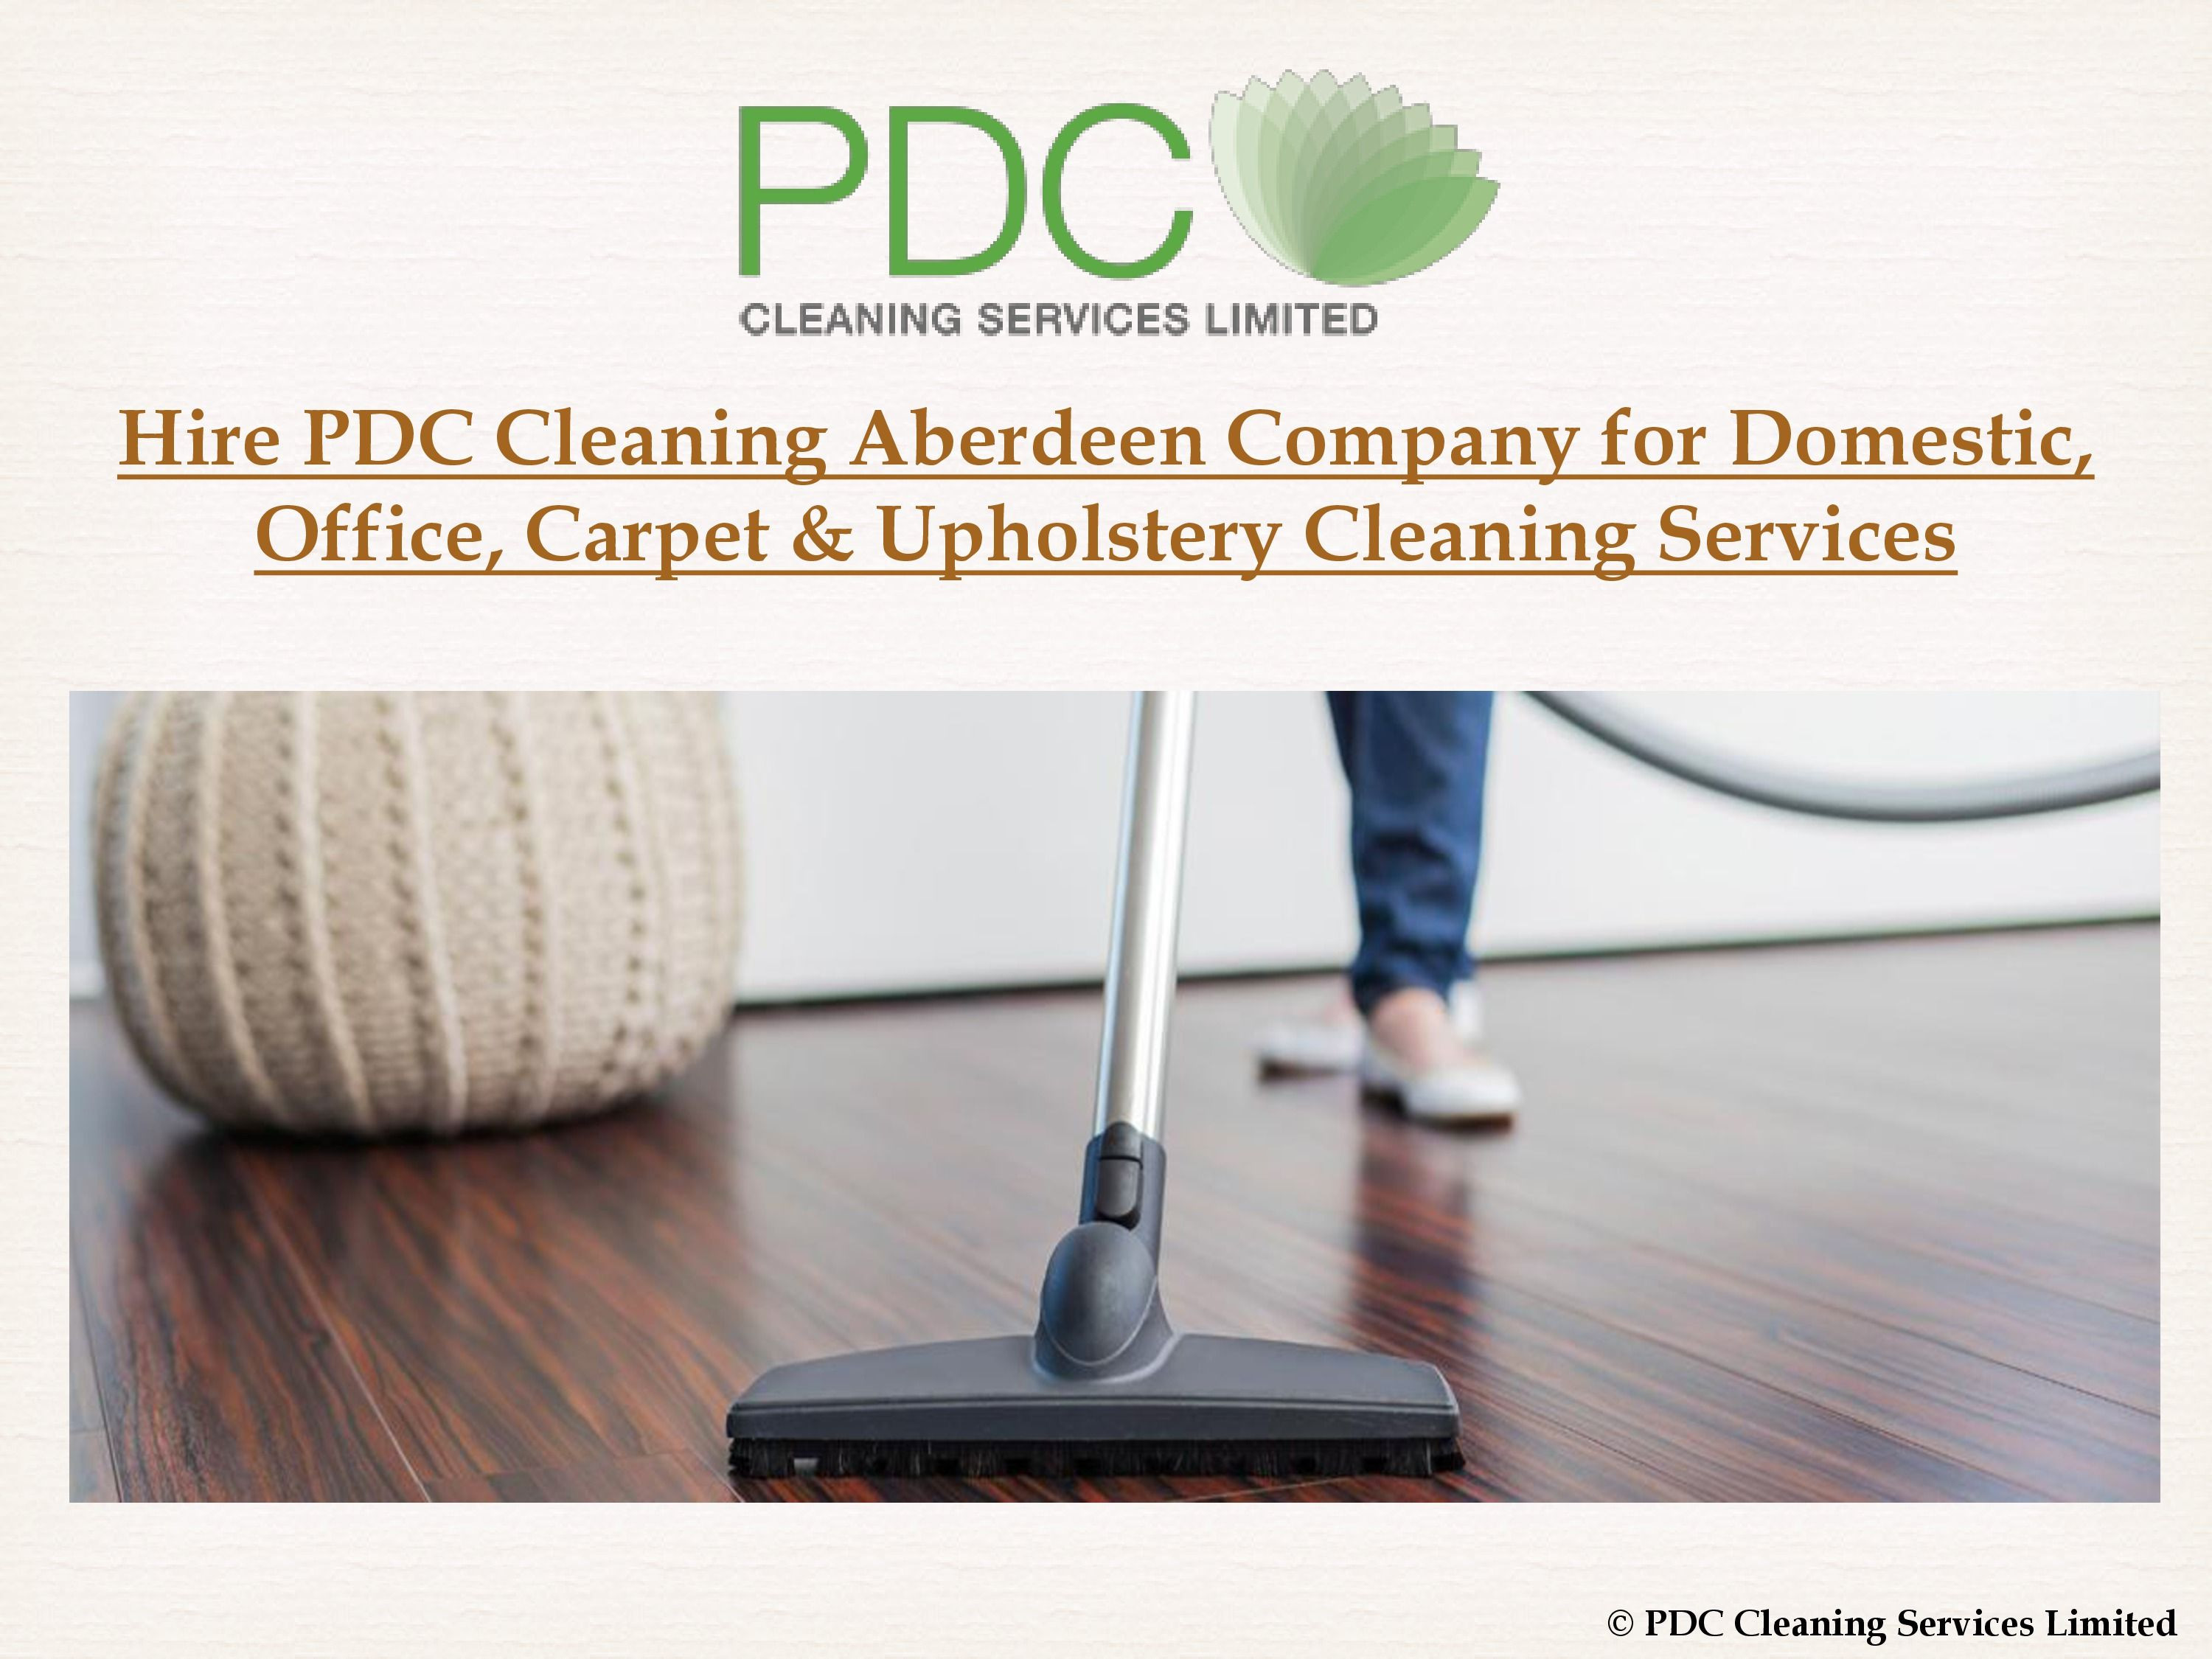 the best vacuum cleaner for hardwood floors of cheap and best cleaning services in aberdeen united kingdom are you pertaining to best professional home cleaning services offers carpet cleaning upholstery cleaning tiling flooring services tile installation repair and more